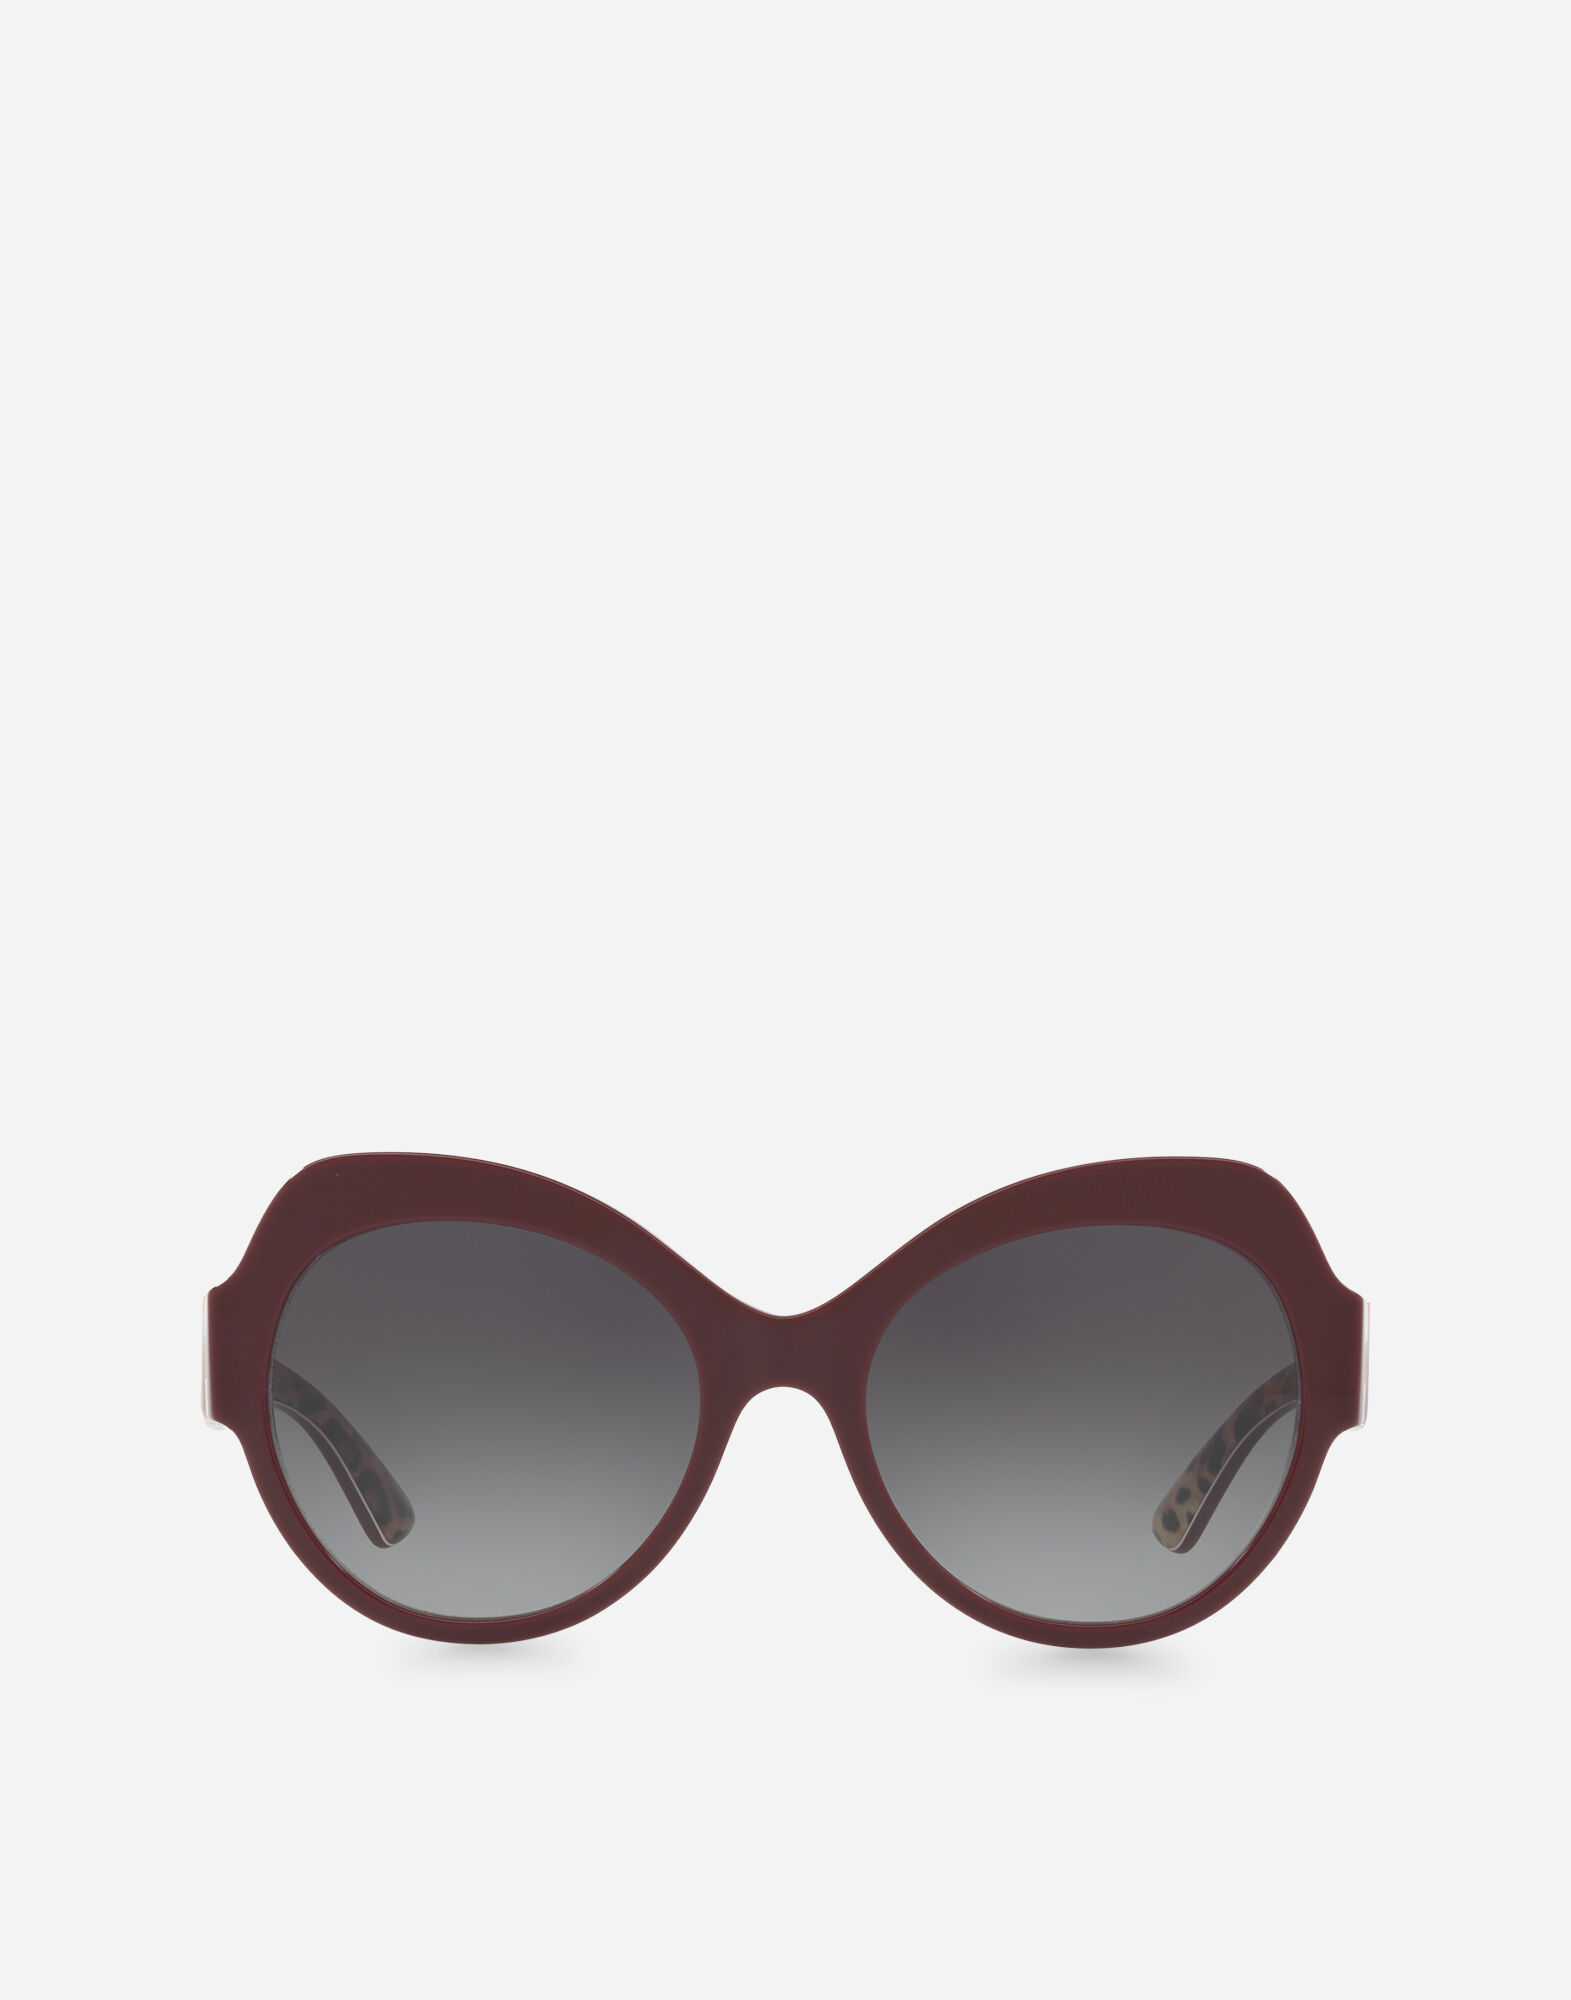 5801e21ccb8dc Dolce   Gabbana Butterfly Sunglasses In Acetate In Bordeaux On Leopard  Print Base